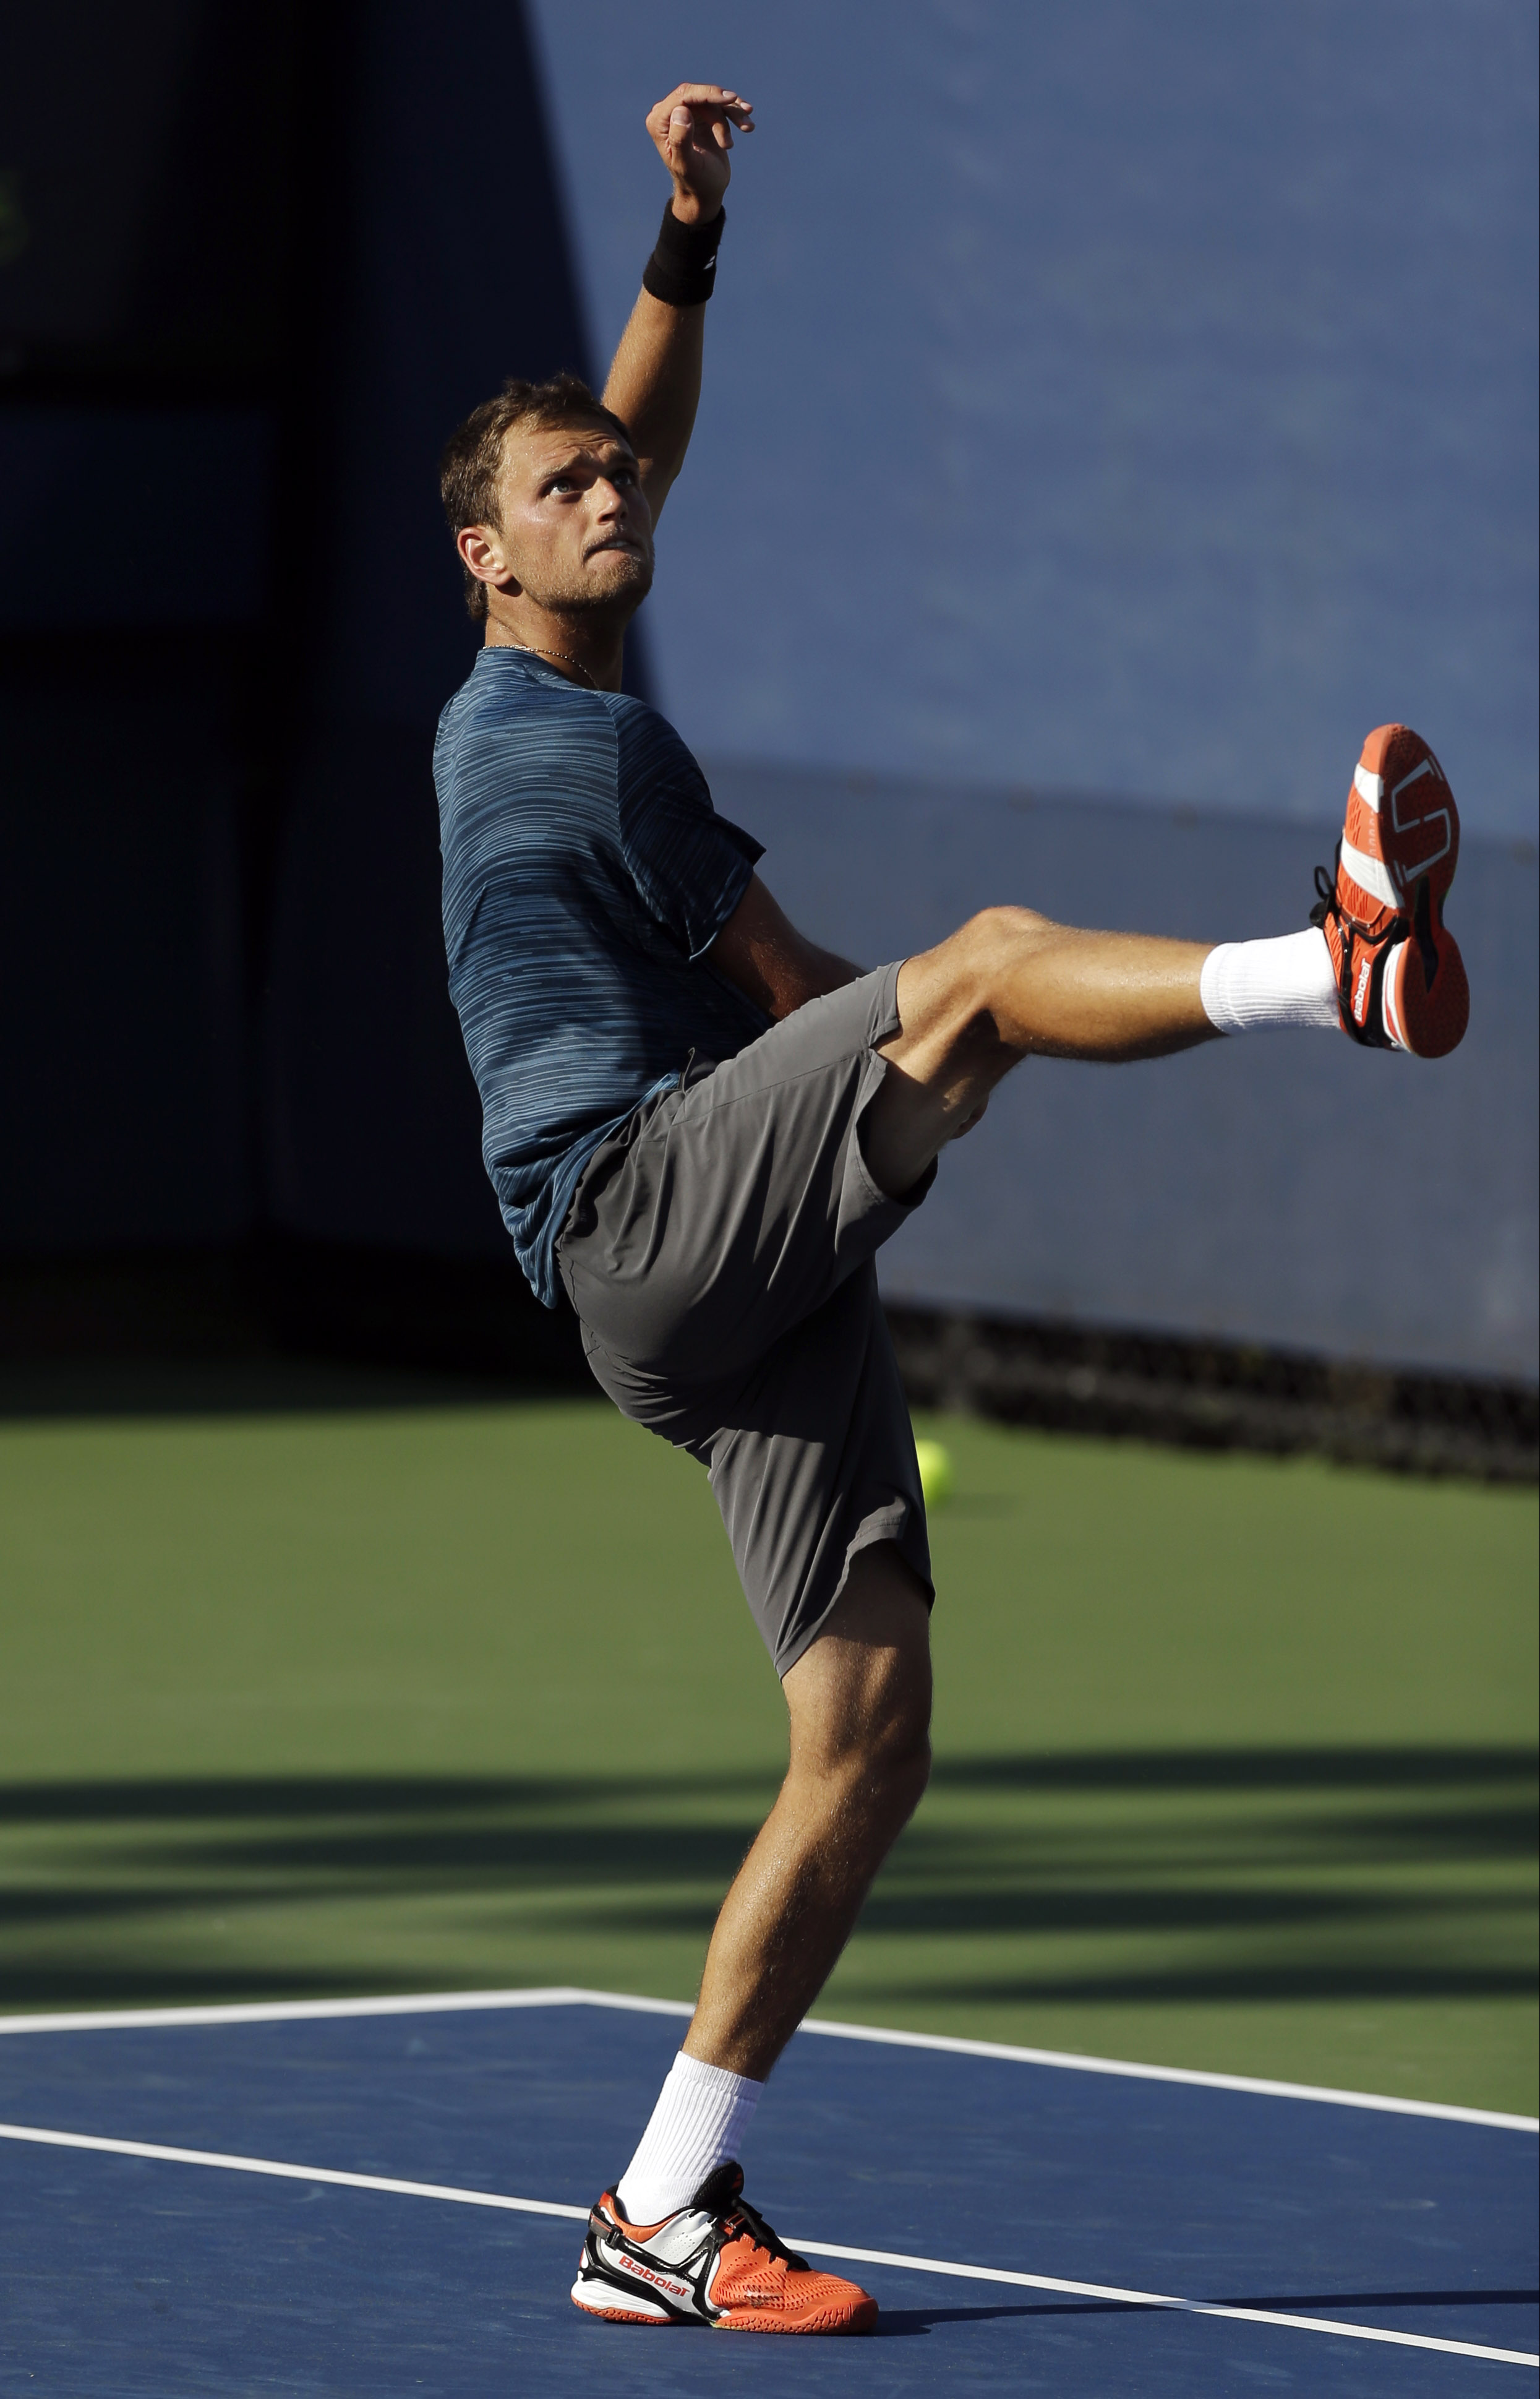 Edouard Roger-Vasselin, of France, reacts after a shot against Tommy Robredo of Spain during the opening round of the 2014 U.S. Open tennis tournament, Monday, Aug. 25, 2014, in New York